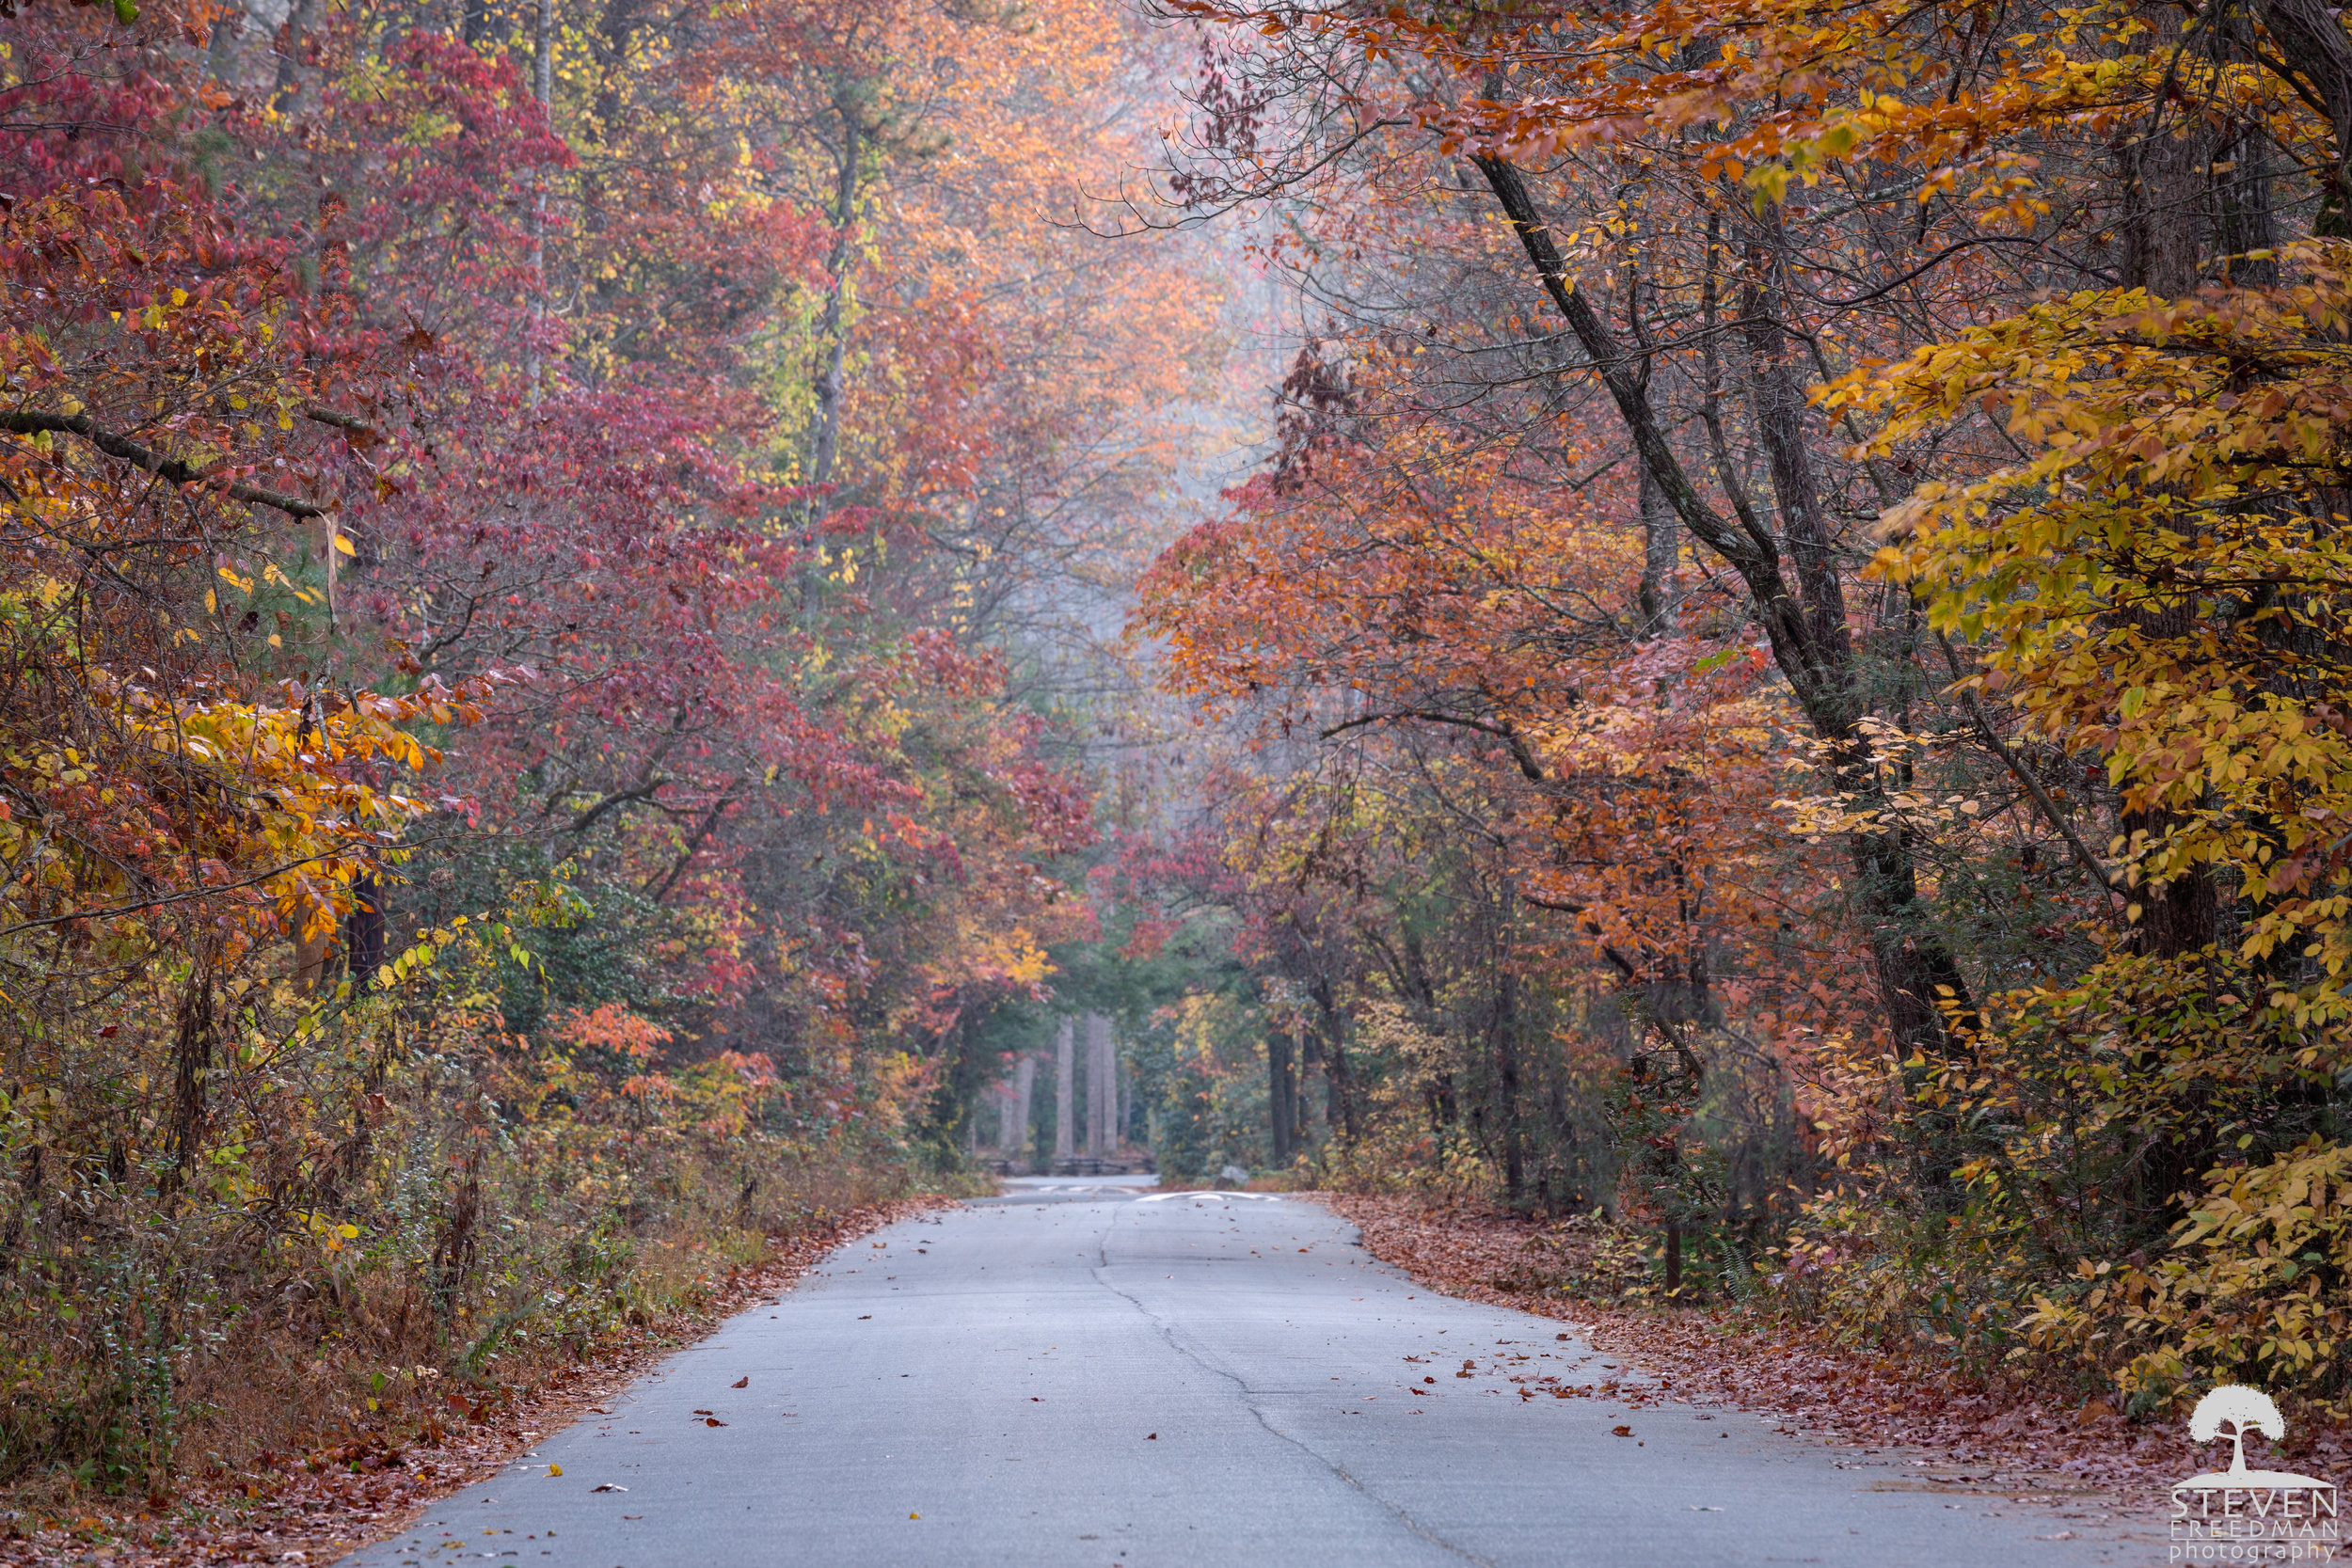 A shot of Forest Road 1206 or Yellow Gap Road in the North Mills River Recreation Area.